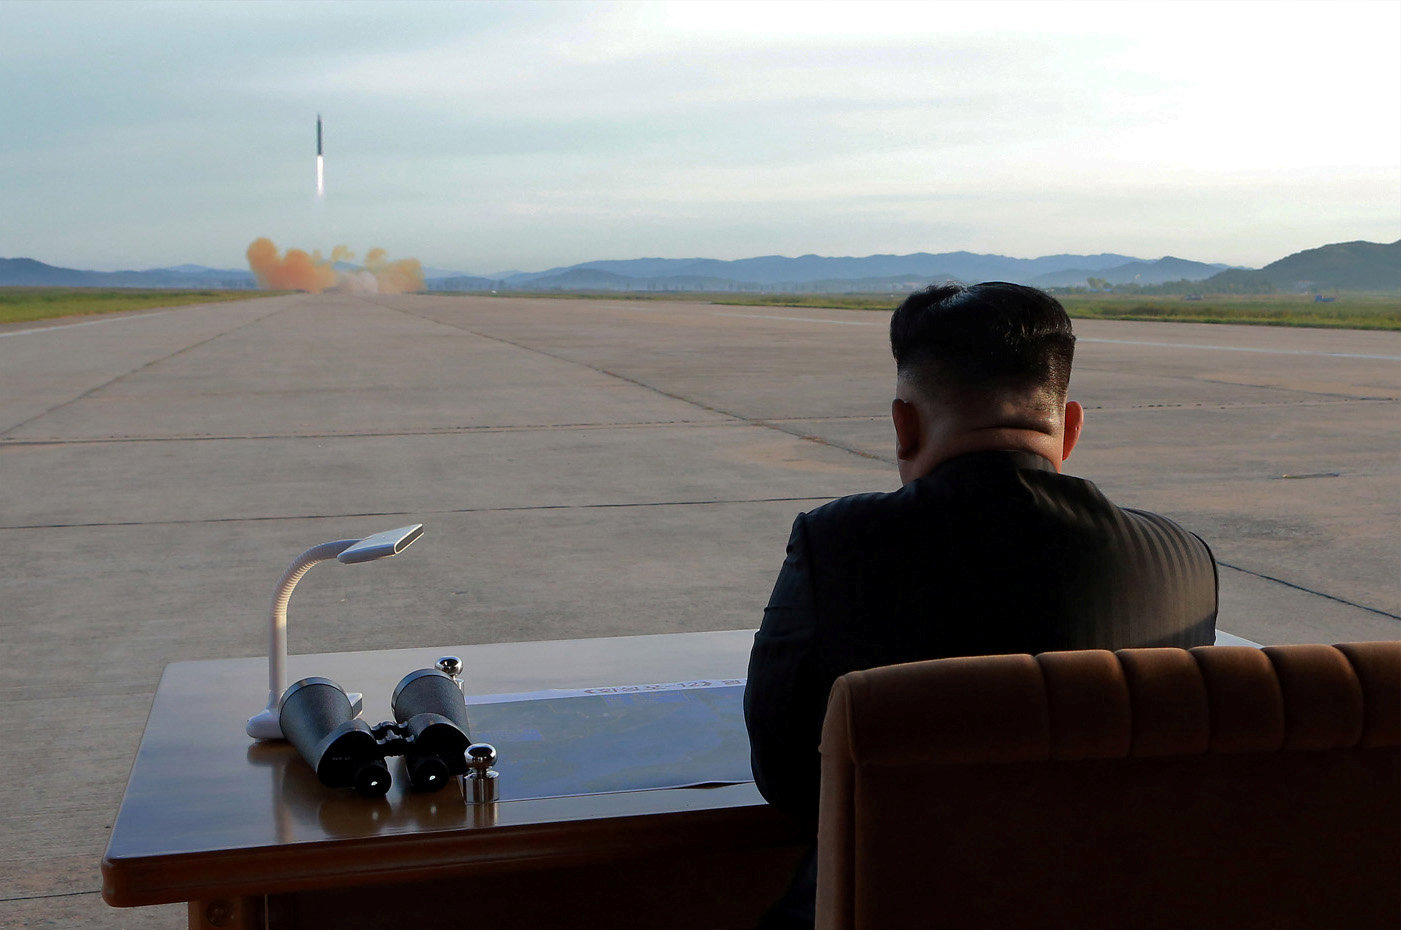 North Korean leader Kim Jong Un watches the launch of a Hwasong-12 missile in this undated photo released by North Korea's Korean Central News Agency (KCNA) on September 16, 2017. (KCNA via REUTERS)